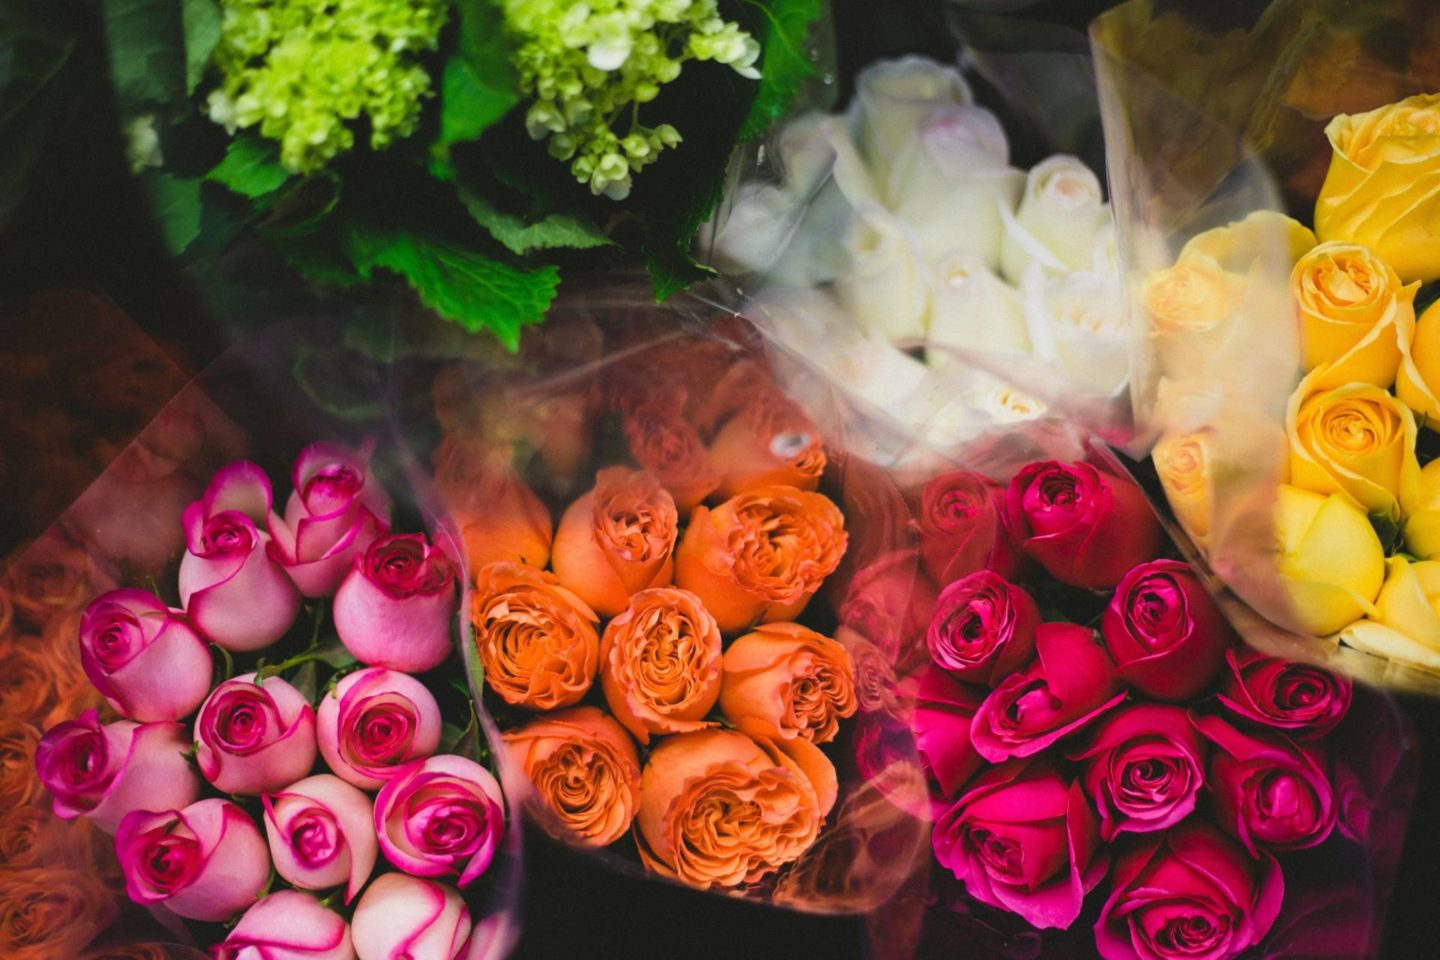 Top 5 Romantic Ways to Surprise Your Girlfriend on V-Day